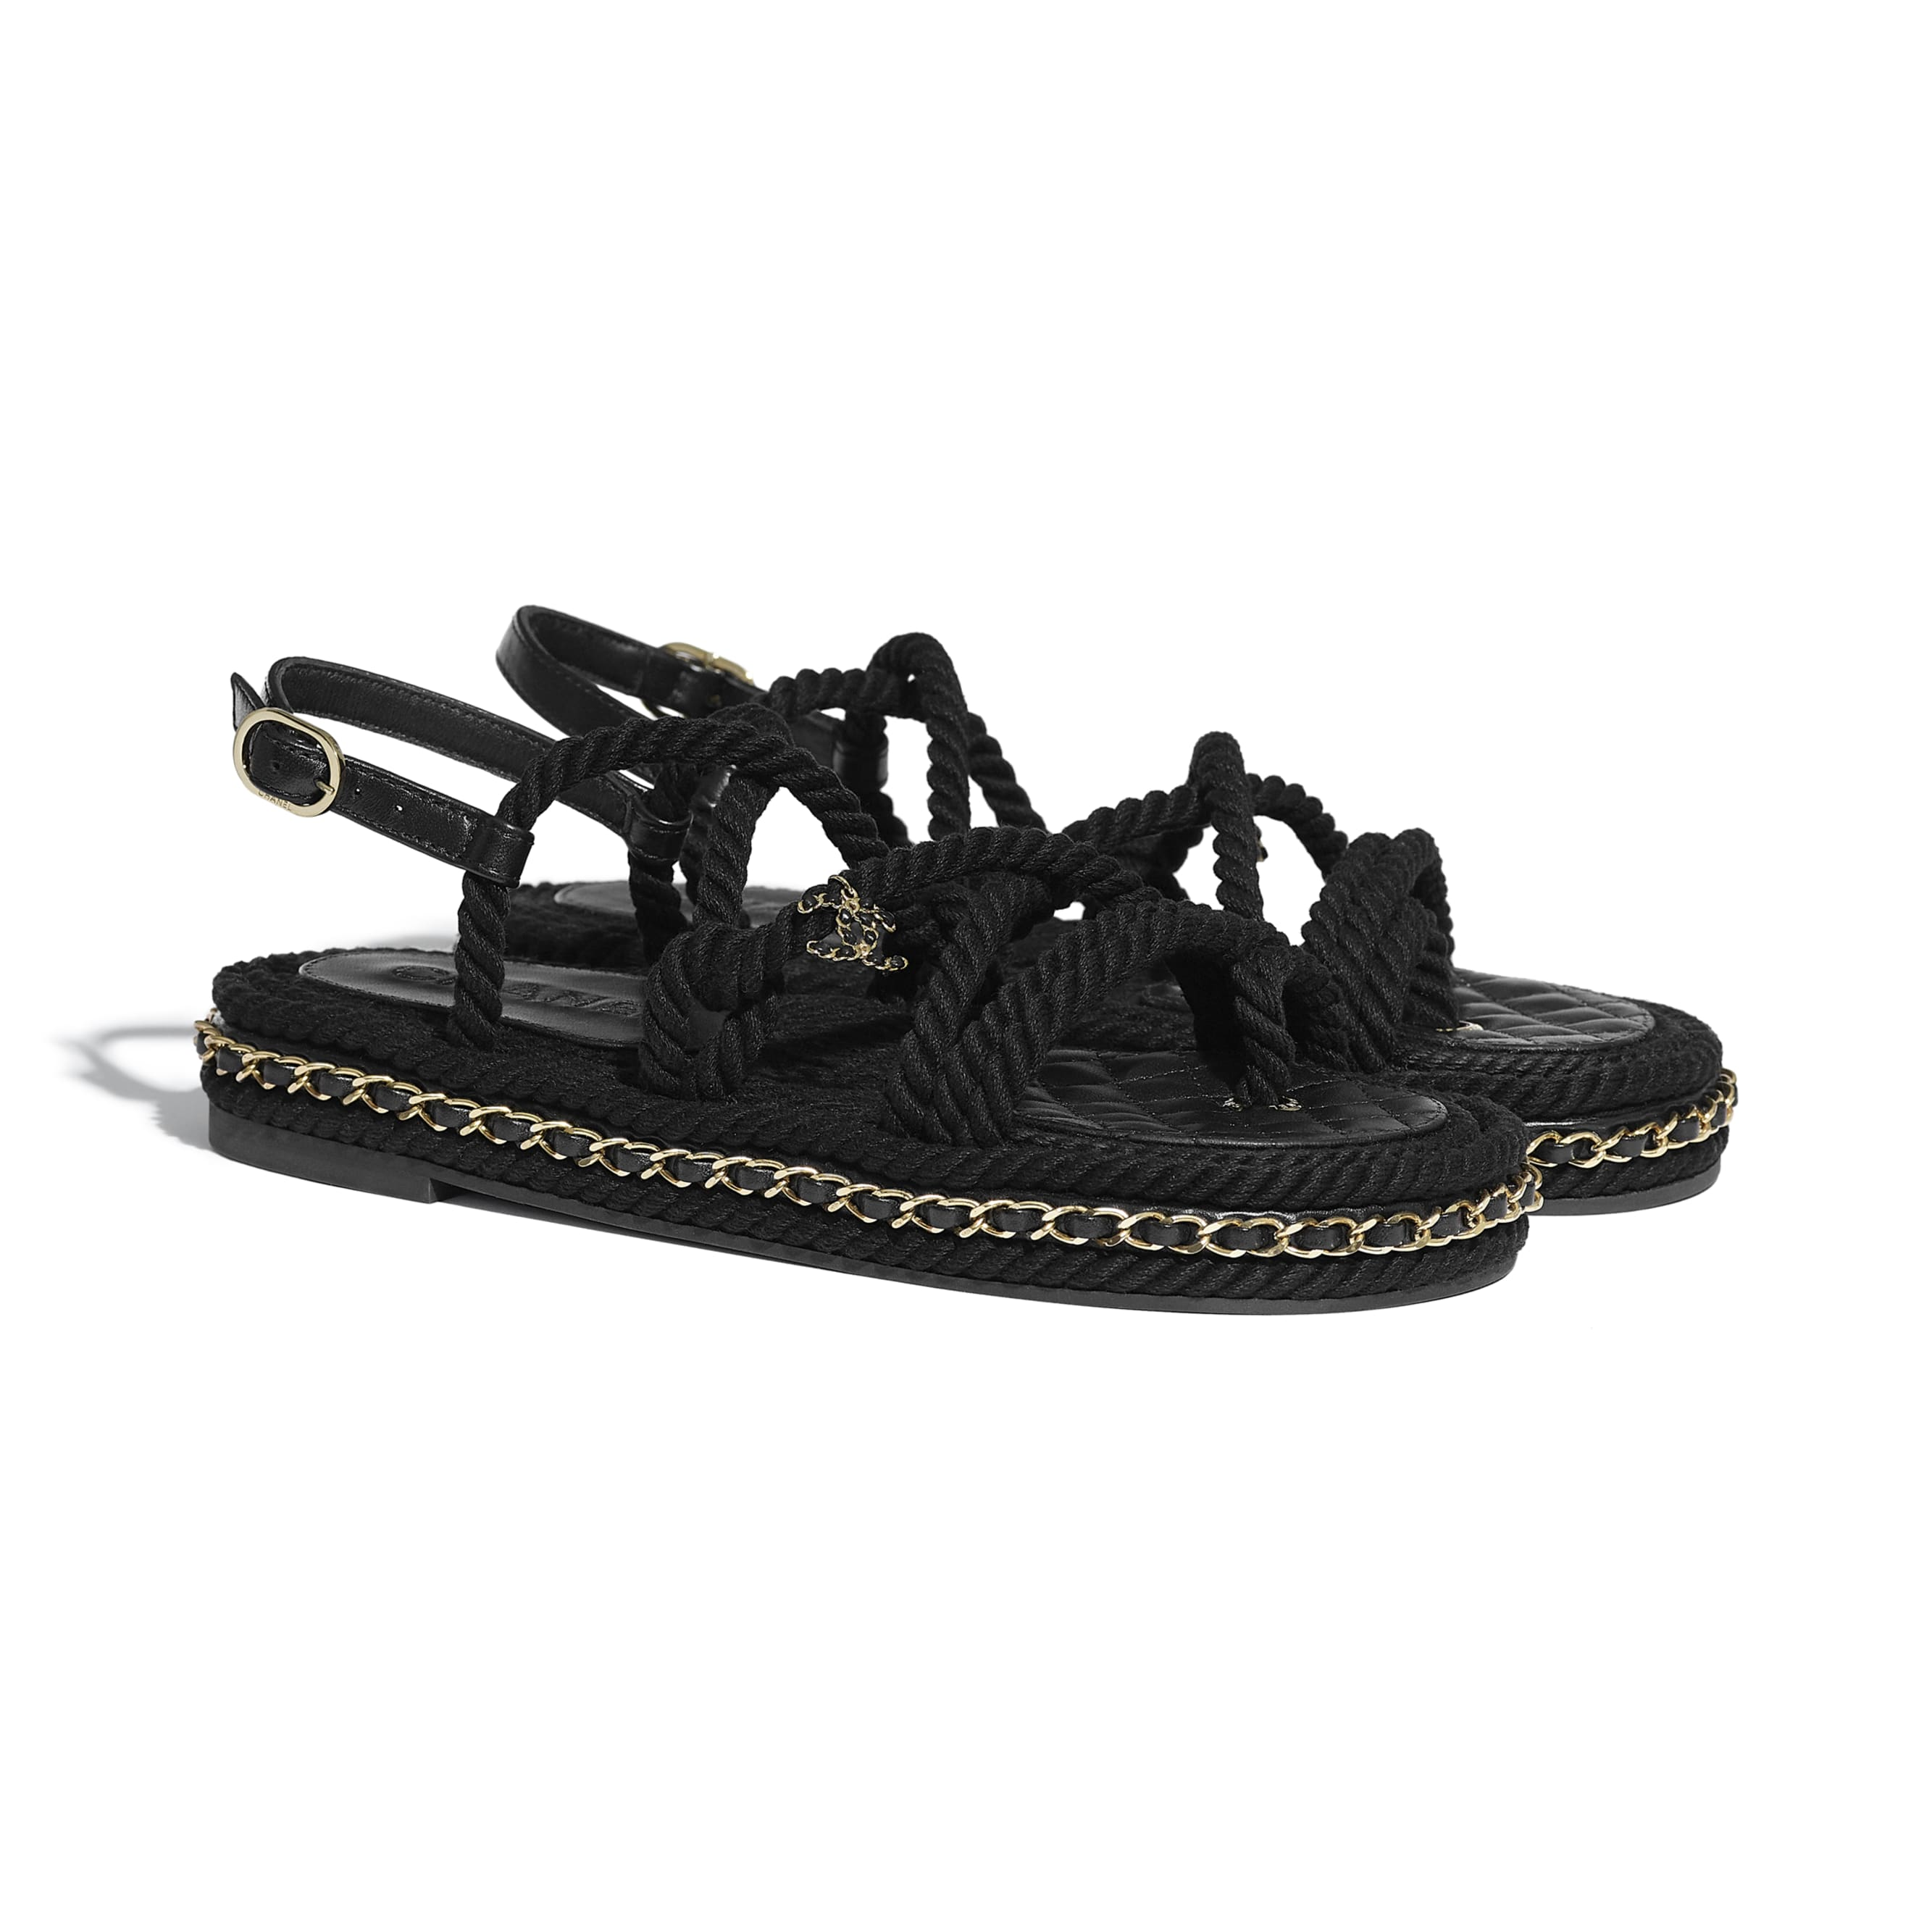 Sandals - Black - Cord - CHANEL - Alternative view - see standard sized version